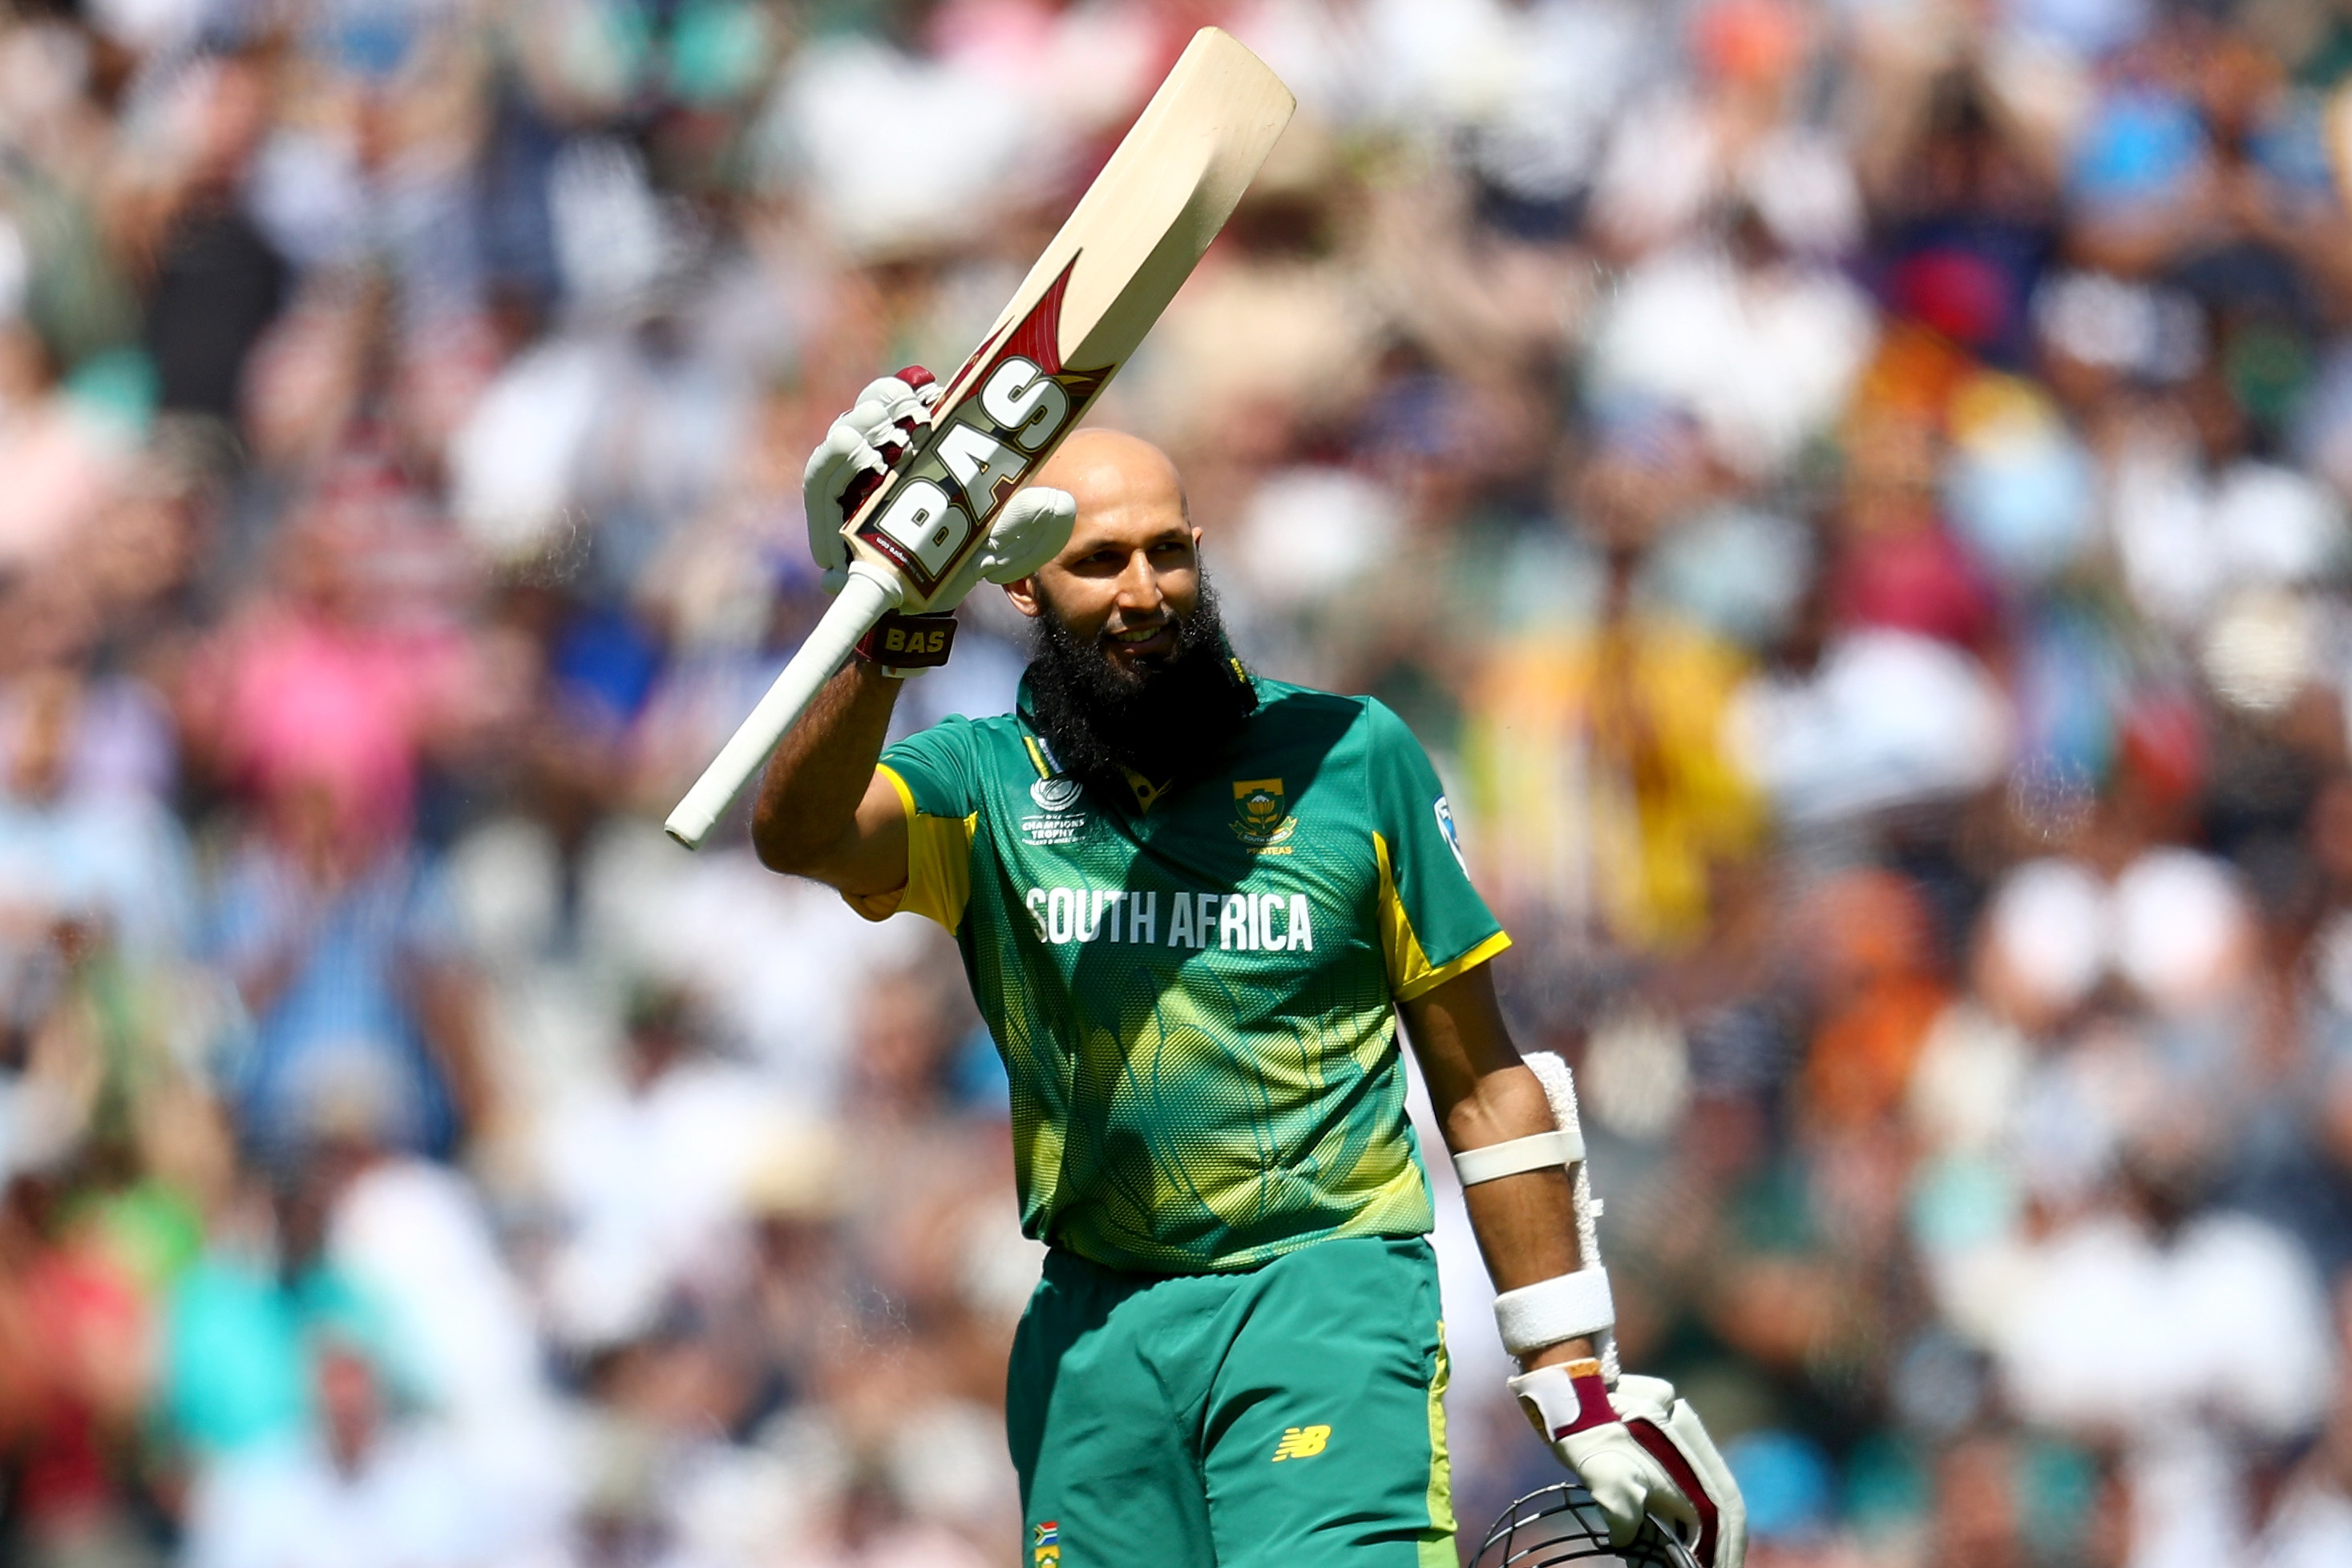 'A true legend and a great human being' – tributes pour in for Hashim Amla